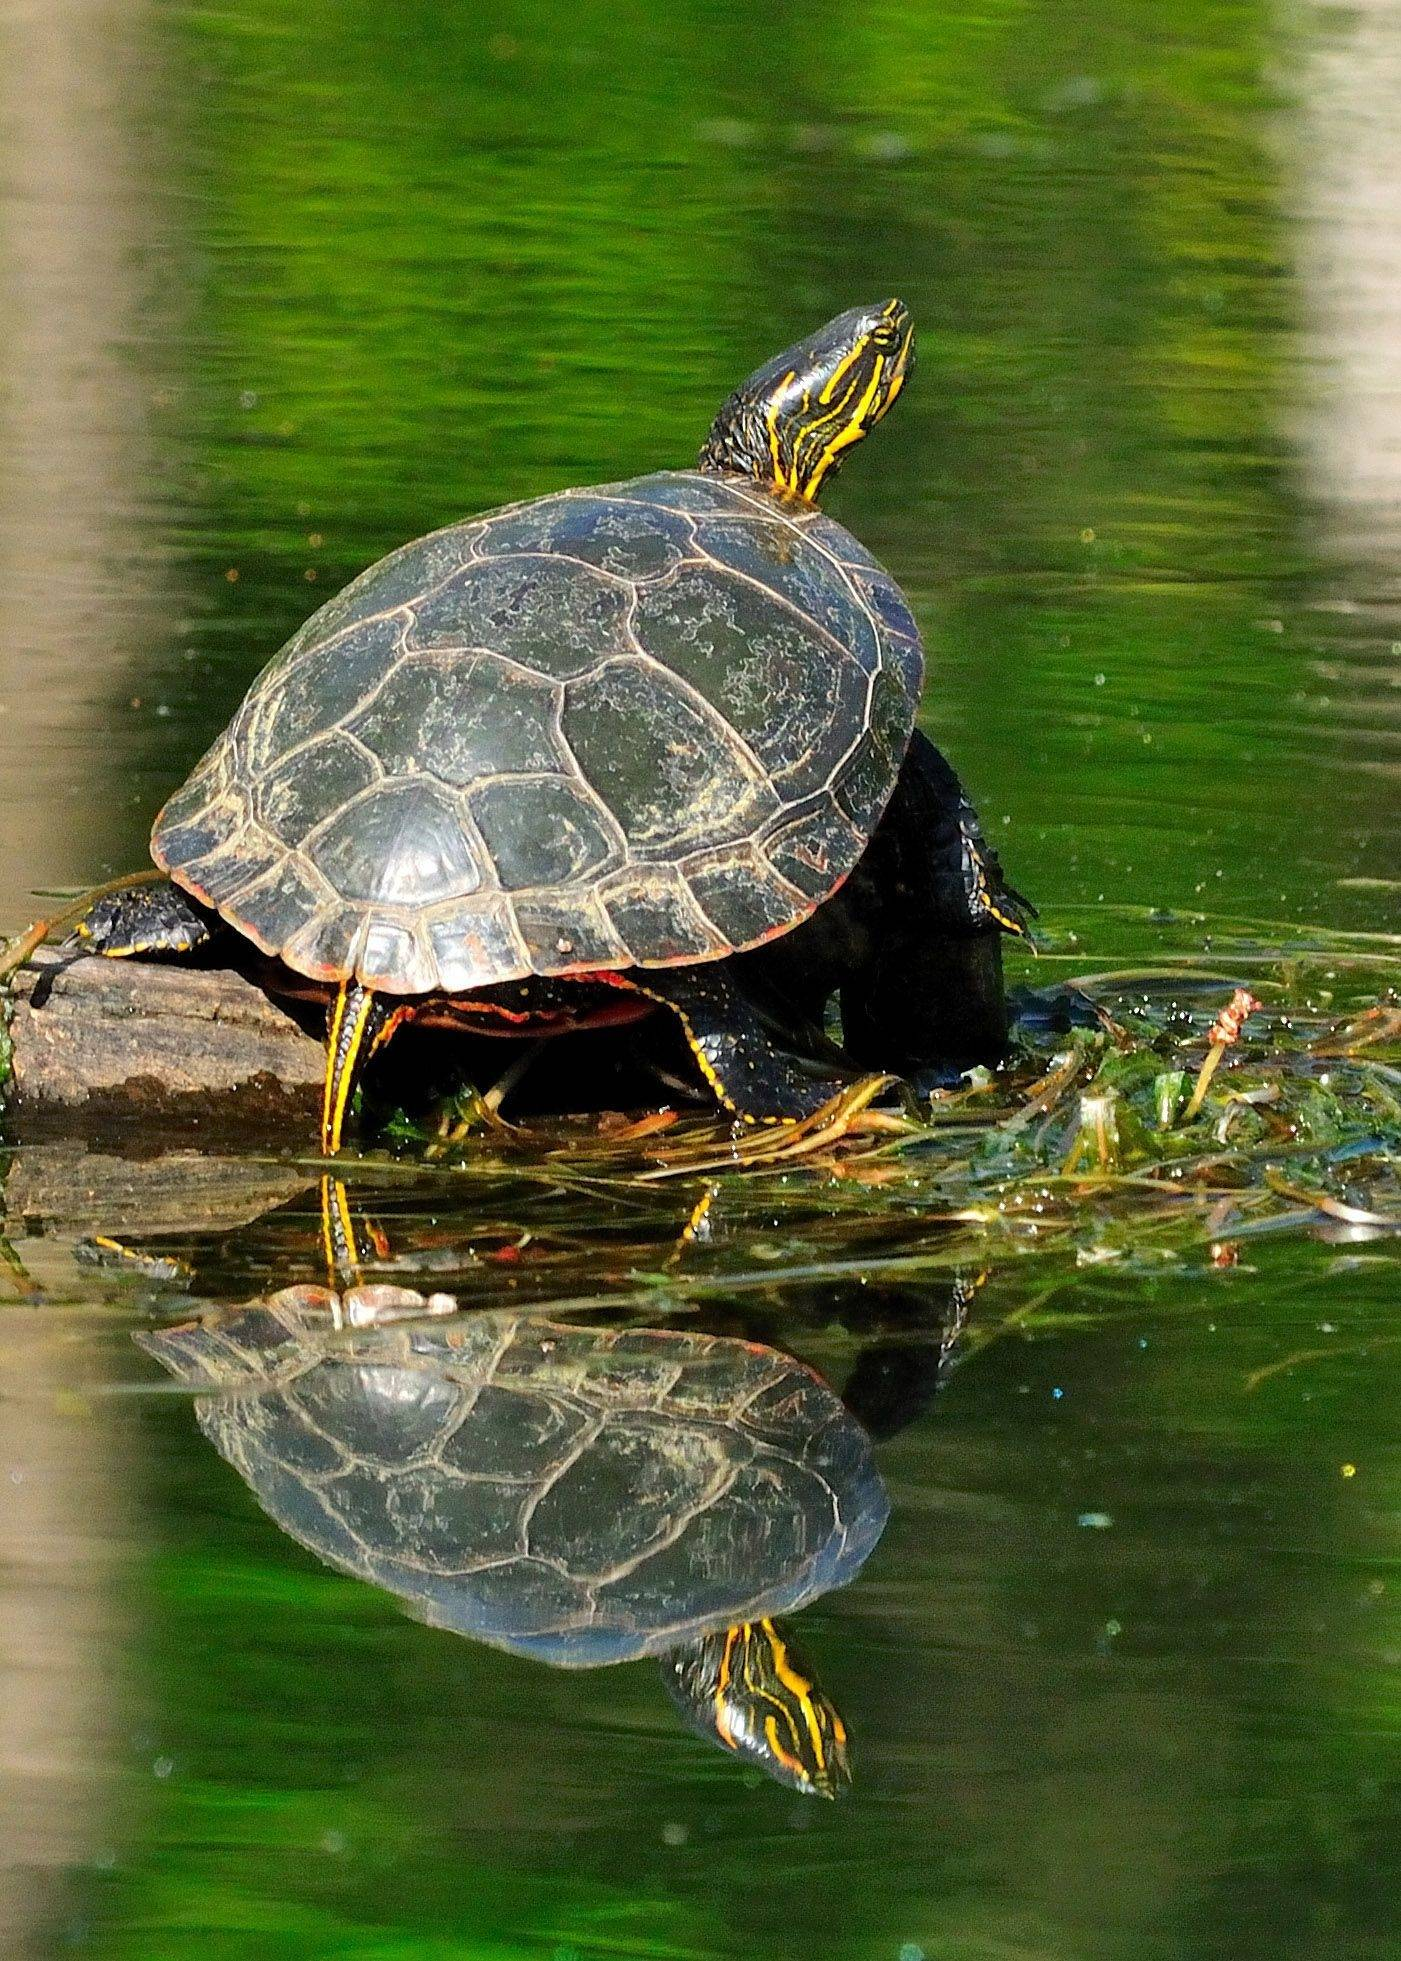 A turtle rests on a log this spring in a pond in western Illinois.